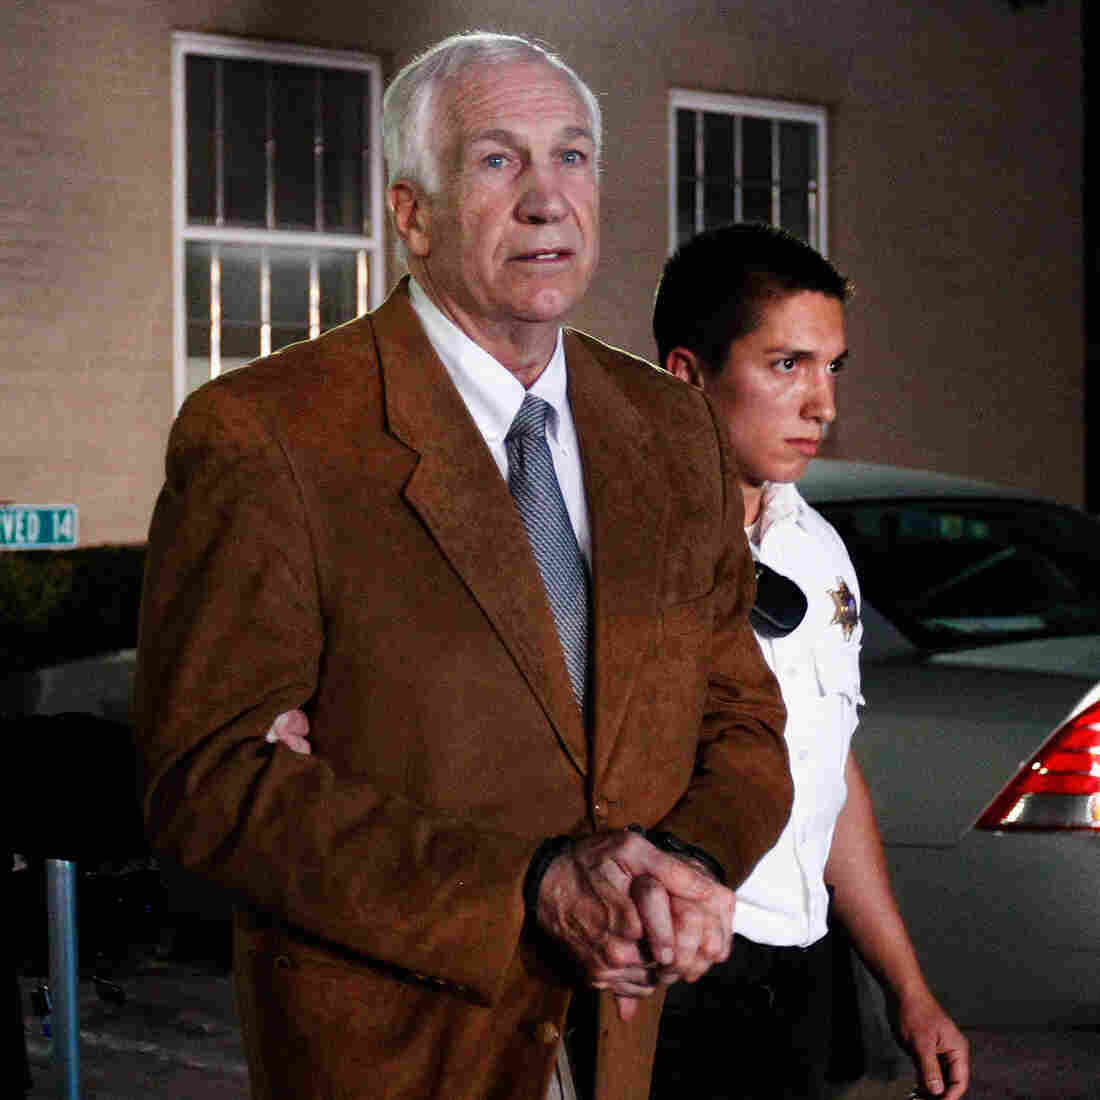 Ex-Penn St. Asst. Coach Jerry Sandusky Guilty Of Sex Abuse